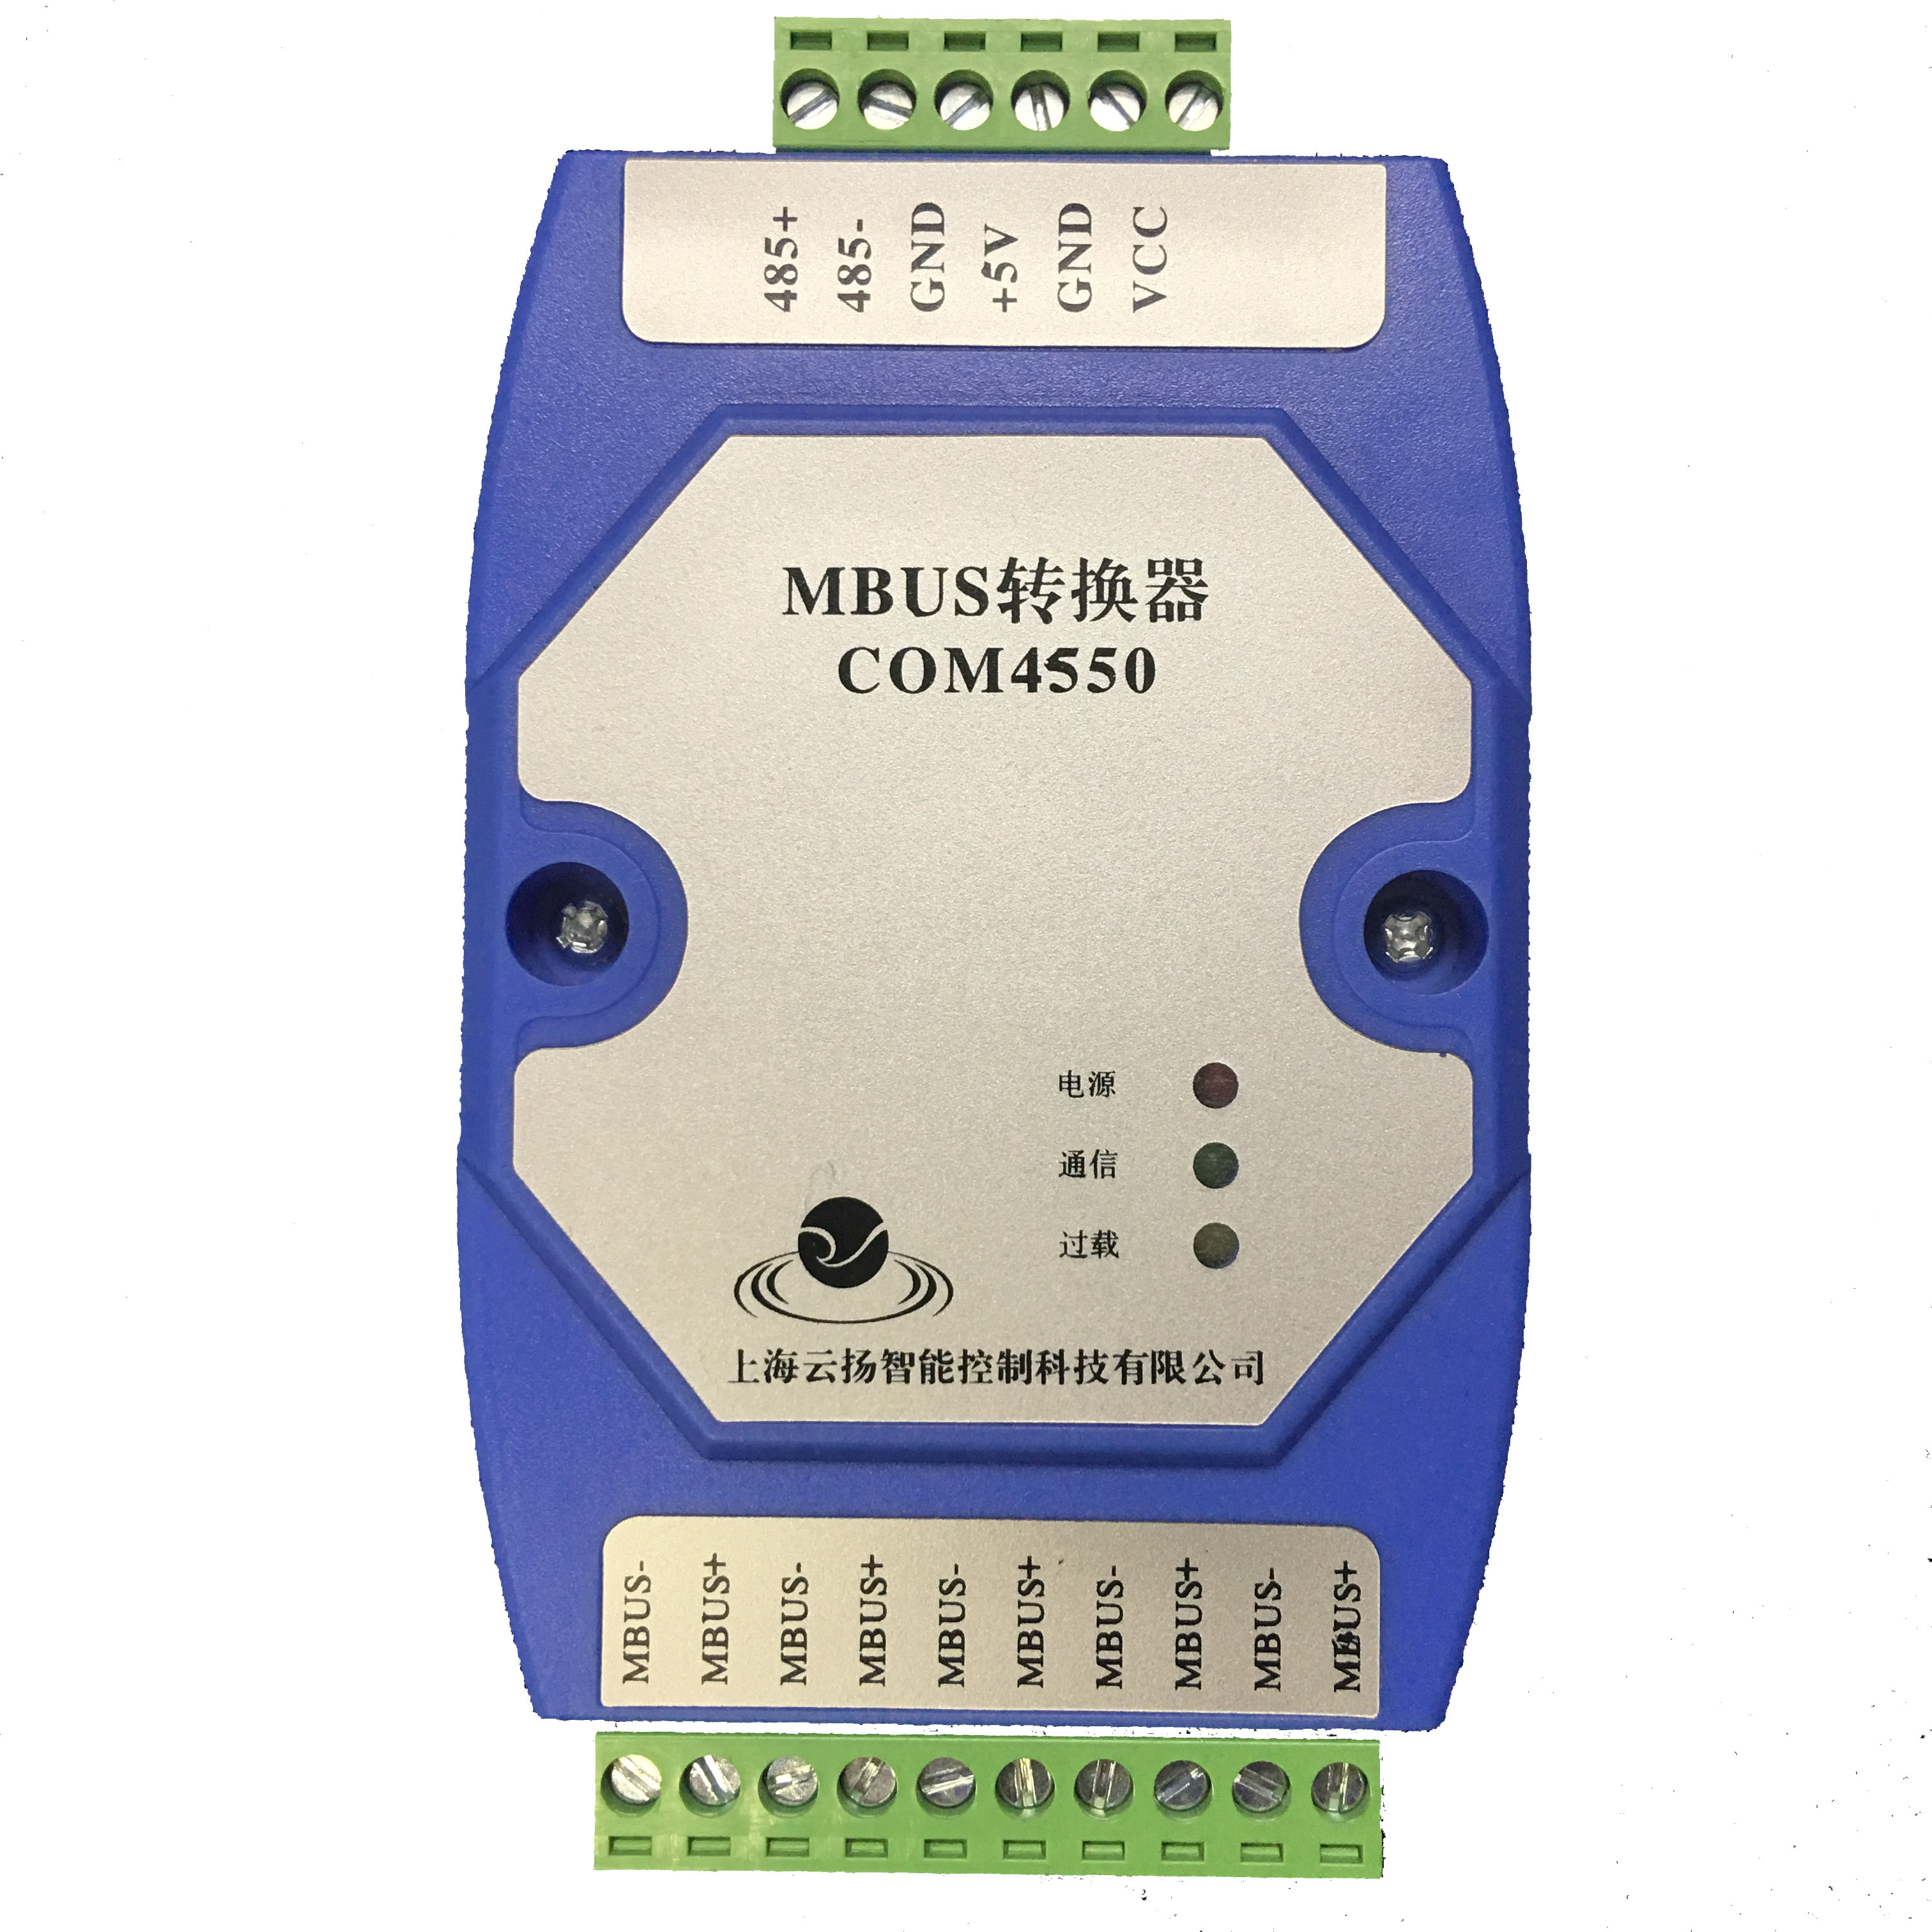 MBUS/M BUS to RS485  RS232  serial concentrator  meter reading converter module  over 300 slave stations|m-bus|mbus|  -